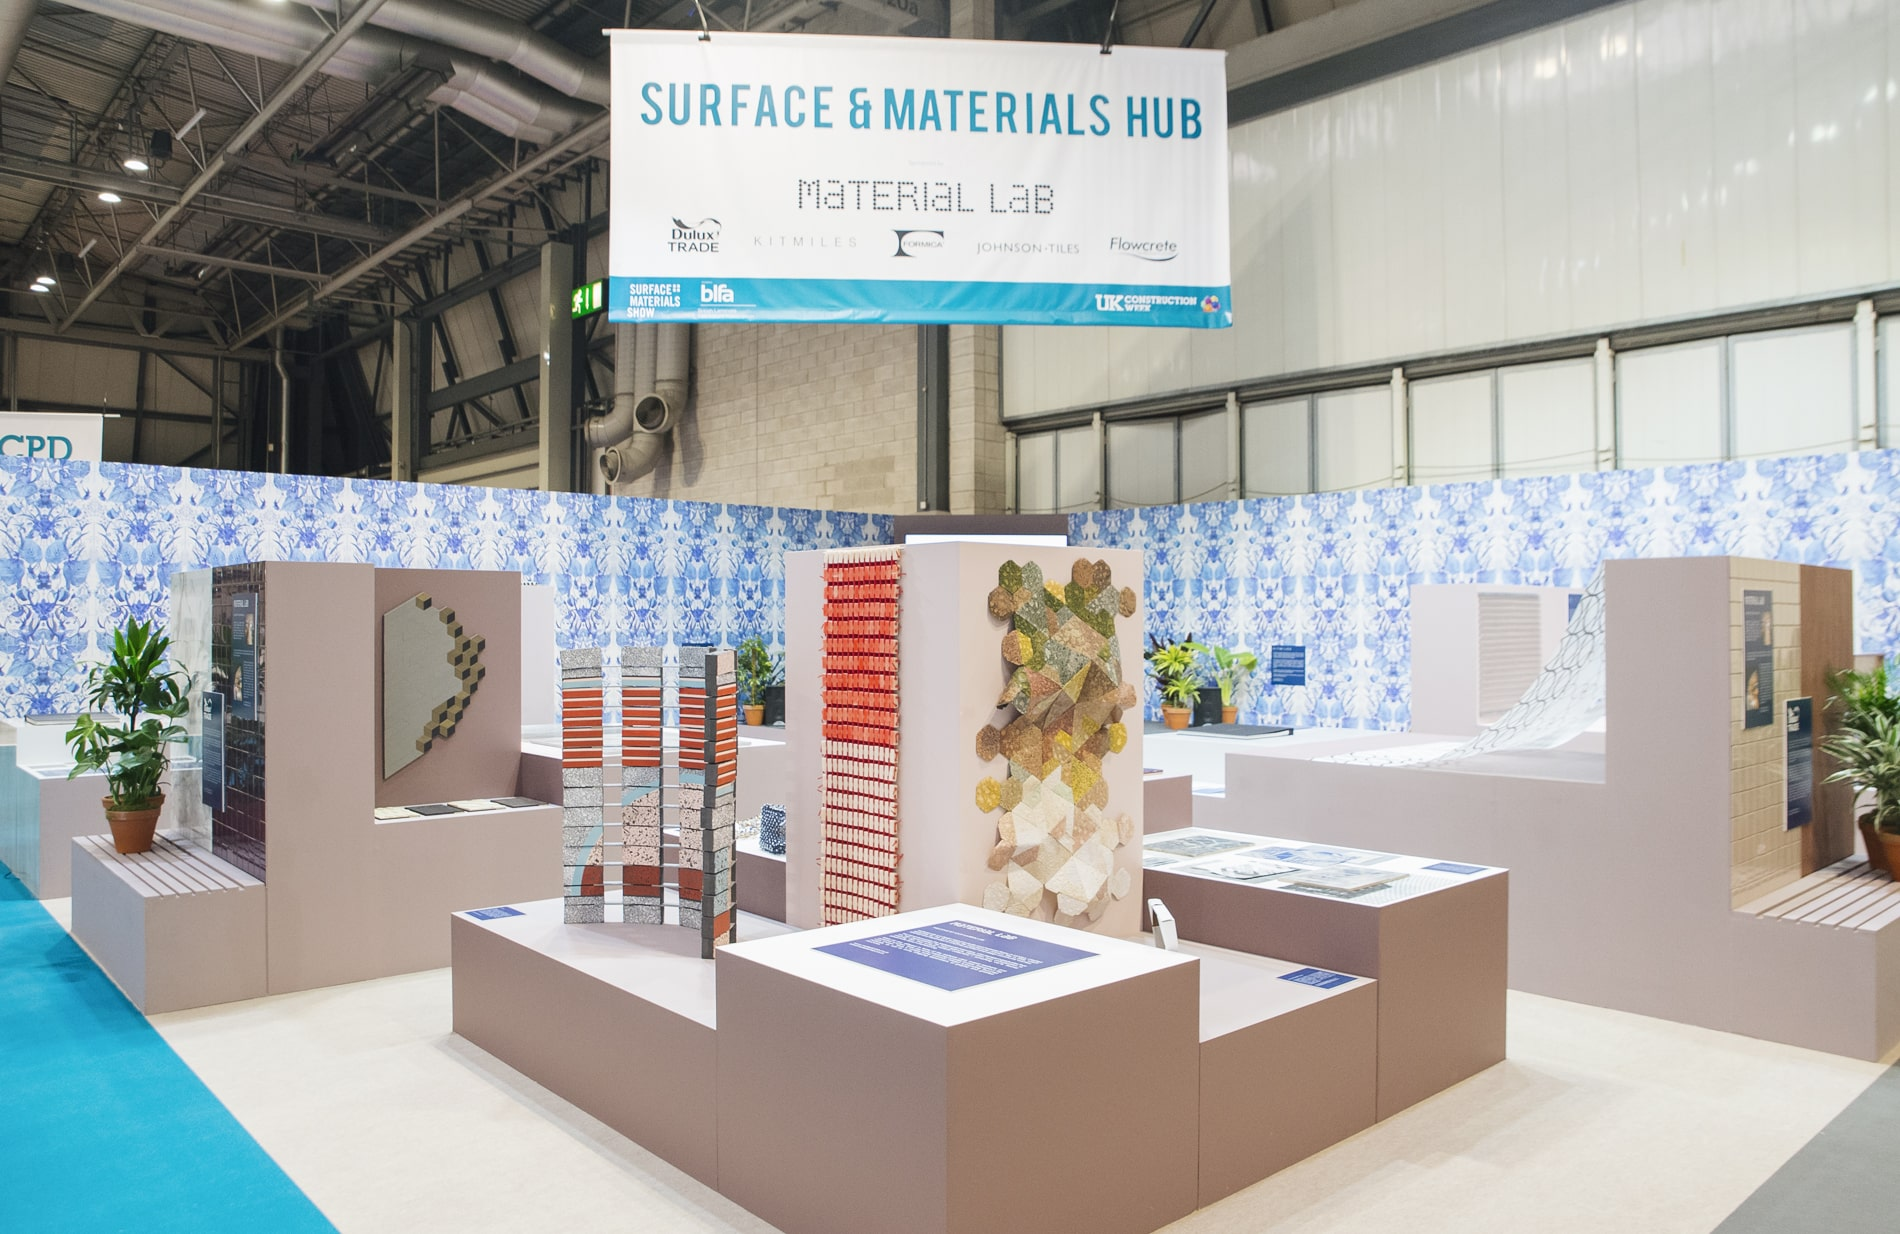 Surface & Materials hub   Exhibition design and material curation for one of the UK's leading design trade shows.